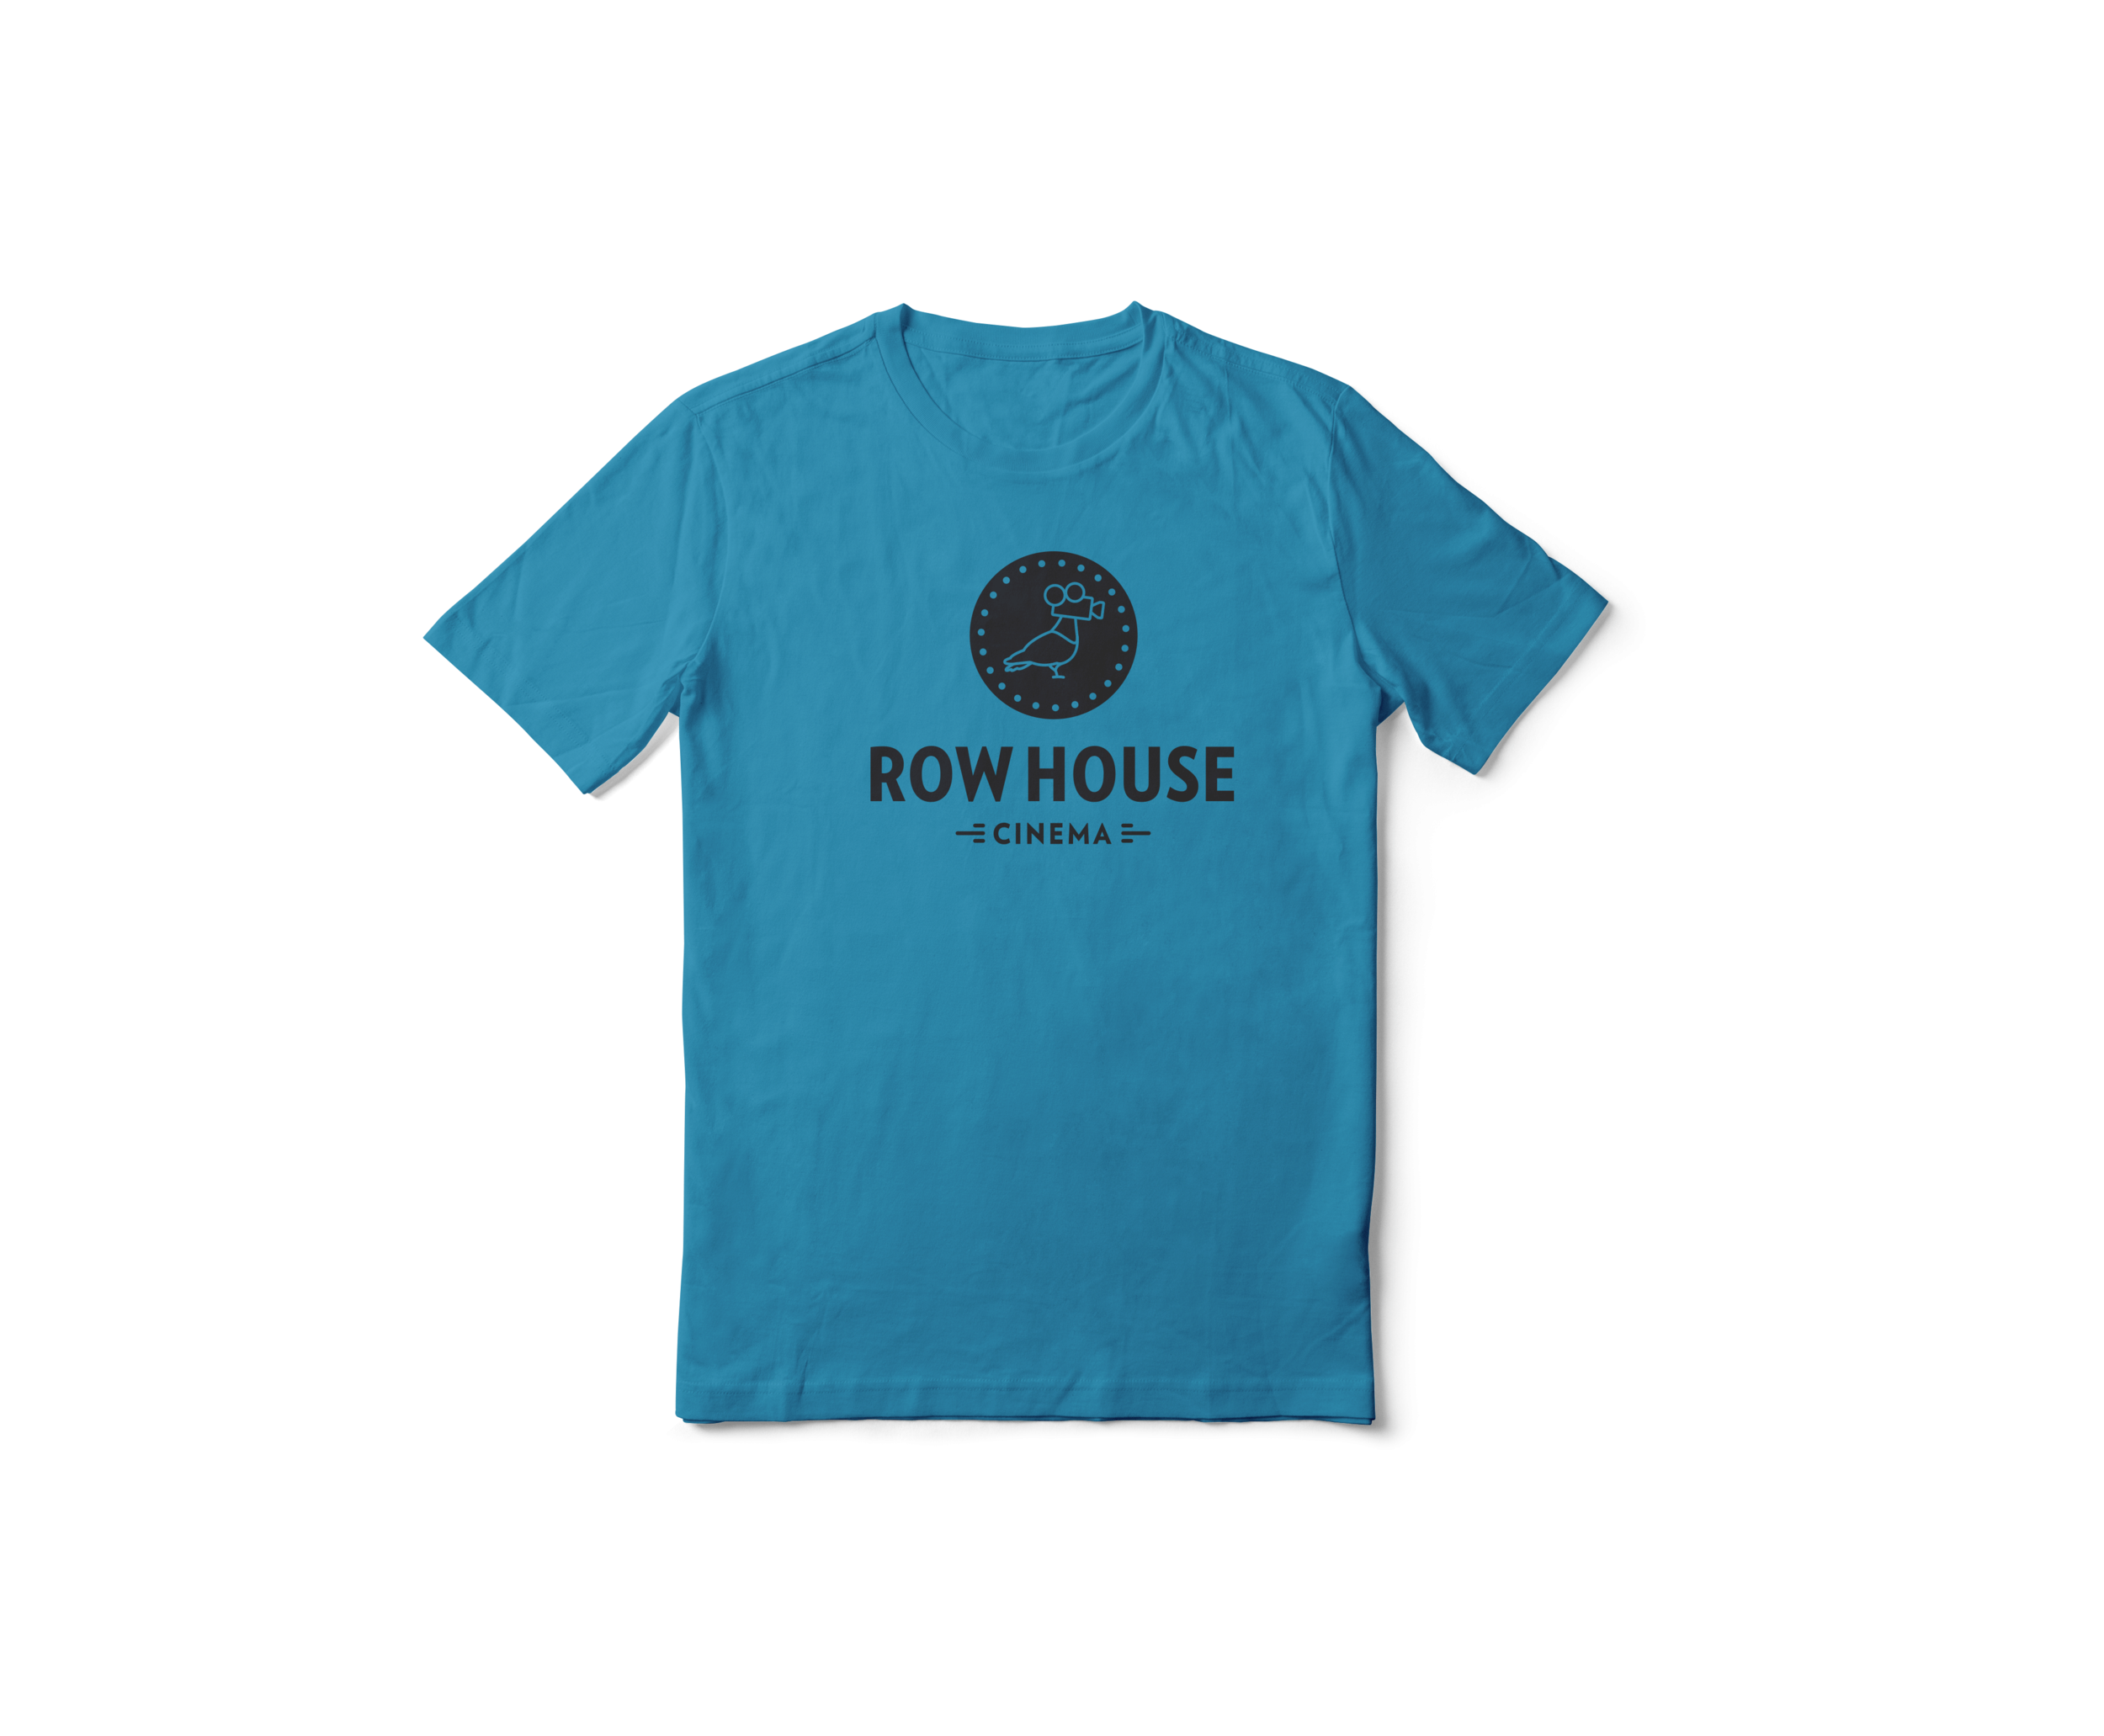 Arts-and-Entertainment_-Row-House-Cinema_Bootstrap-Design-Co_Tshirt2.png